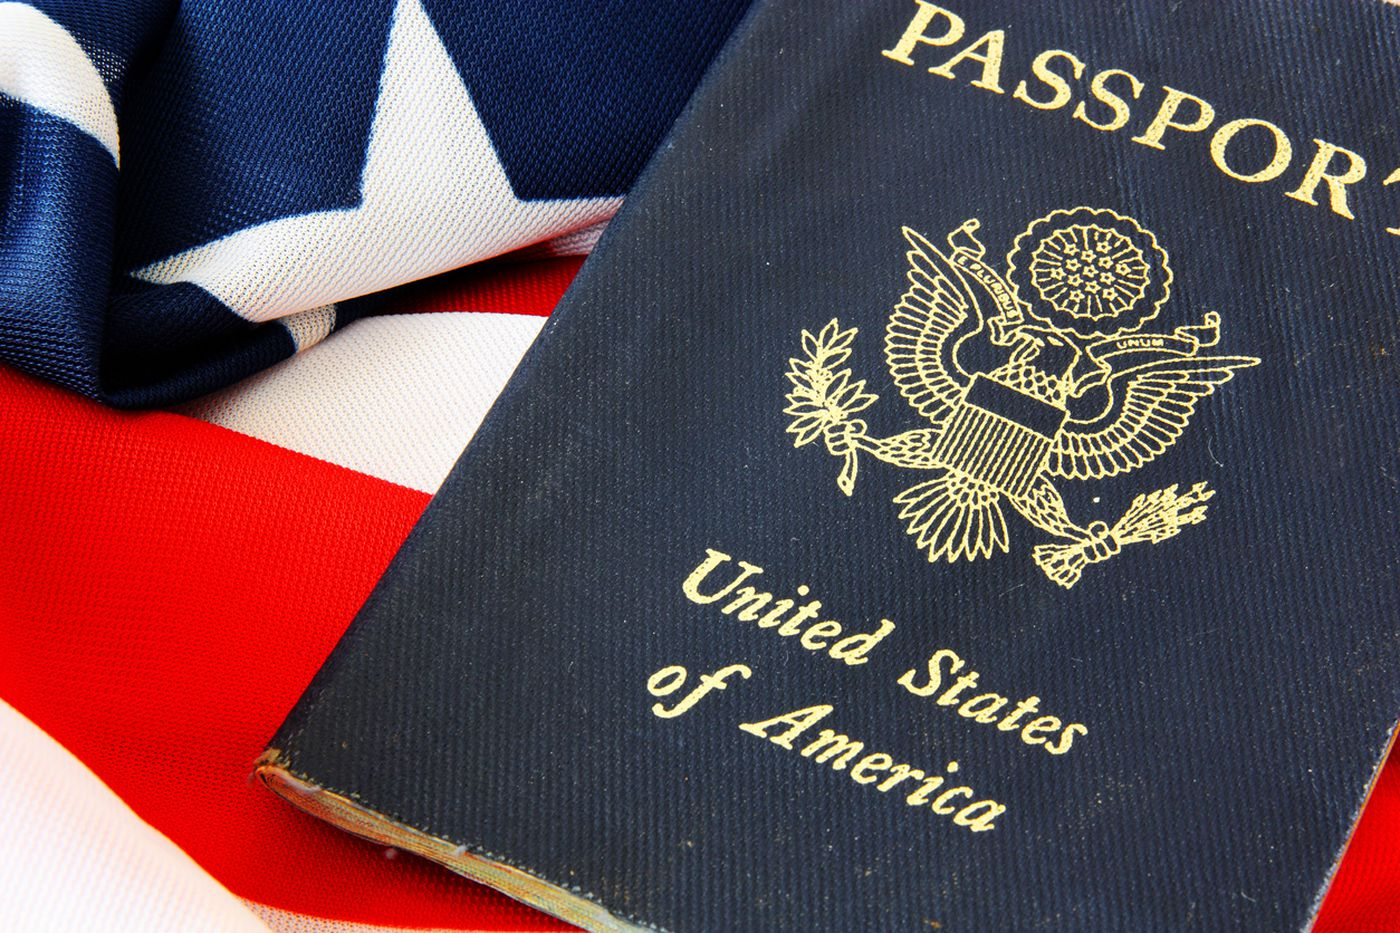 Putting a rush on a passport, and a non-smile | Lisa Scottoline